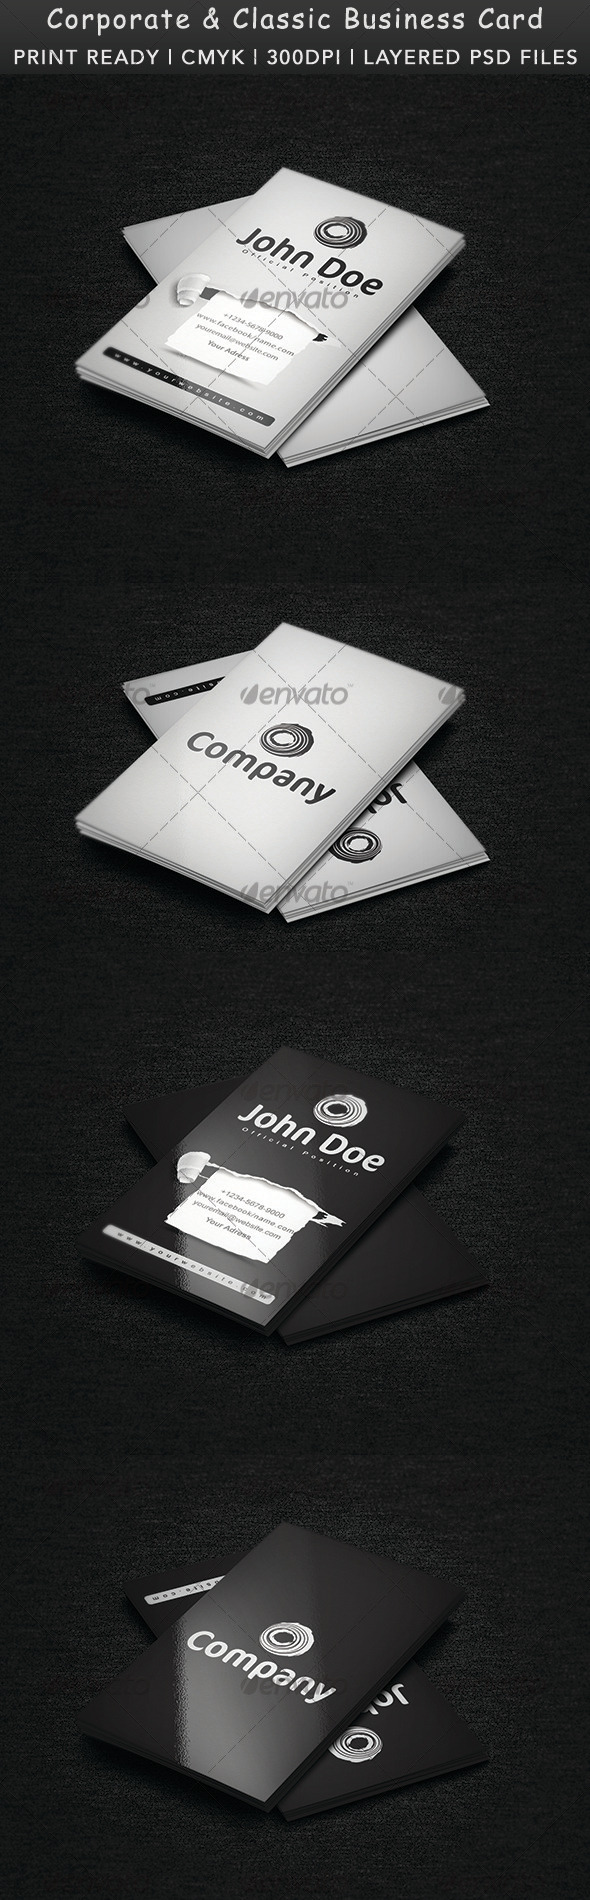 Corporate & Classic Business Card - Creative Business Cards